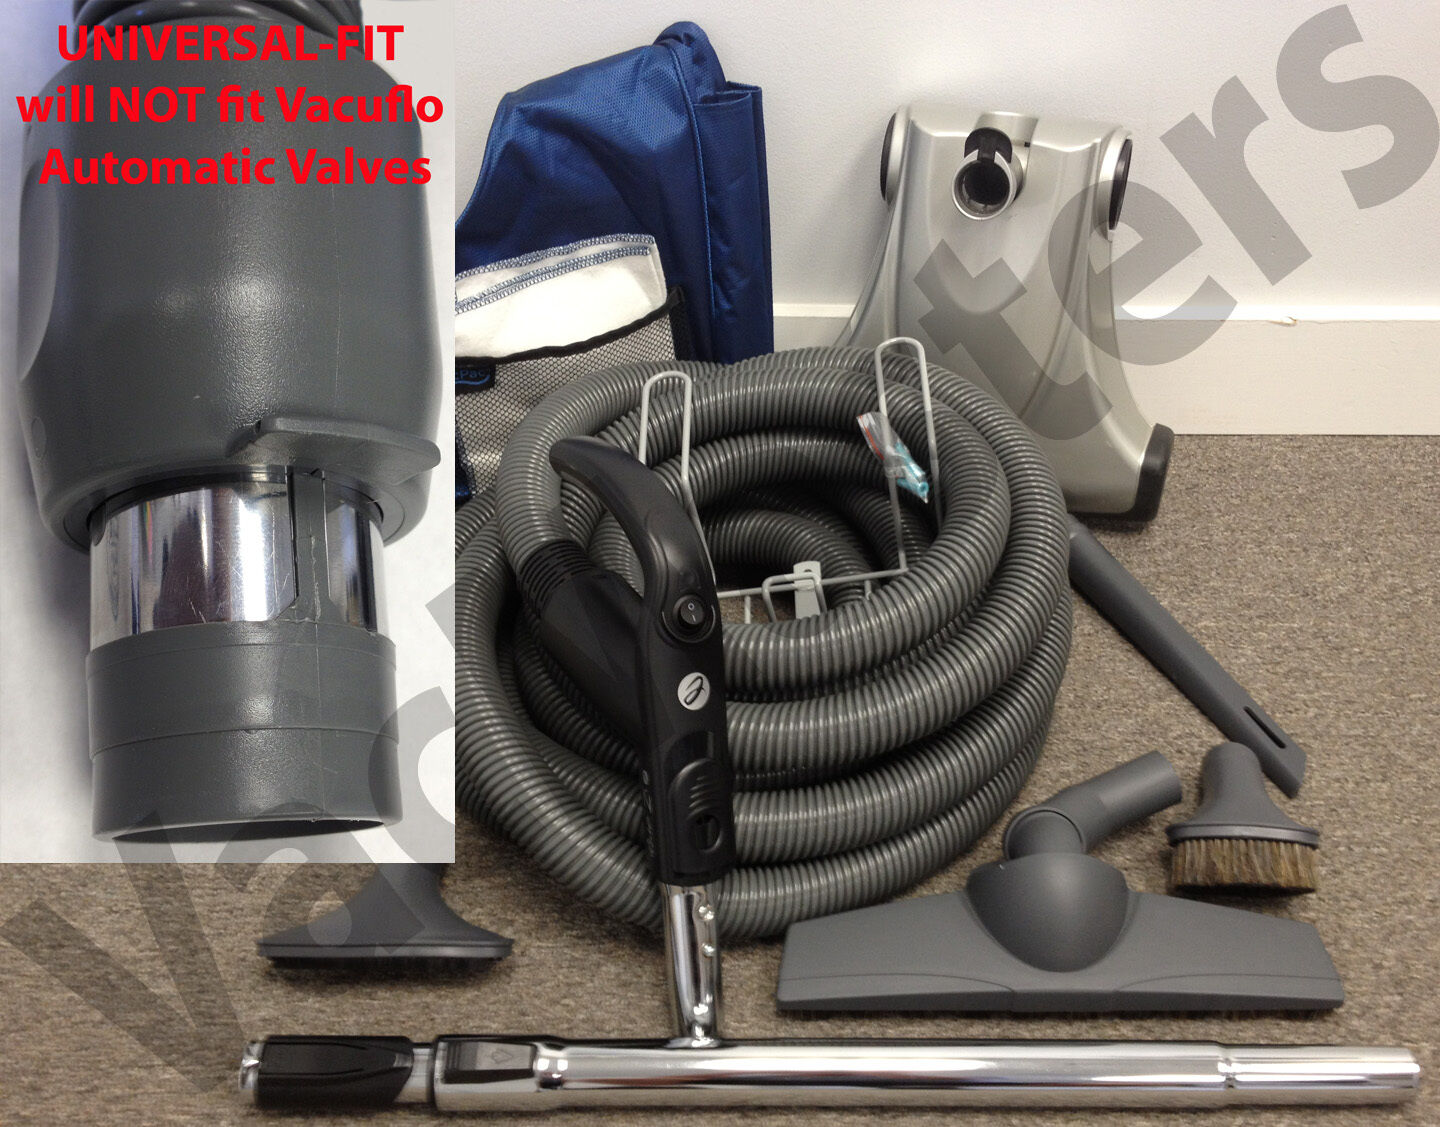 GENUINE Vacuflo 30' E-Class CleanTeam Deluxe central vacuum set - UNIVERSAL-FIT